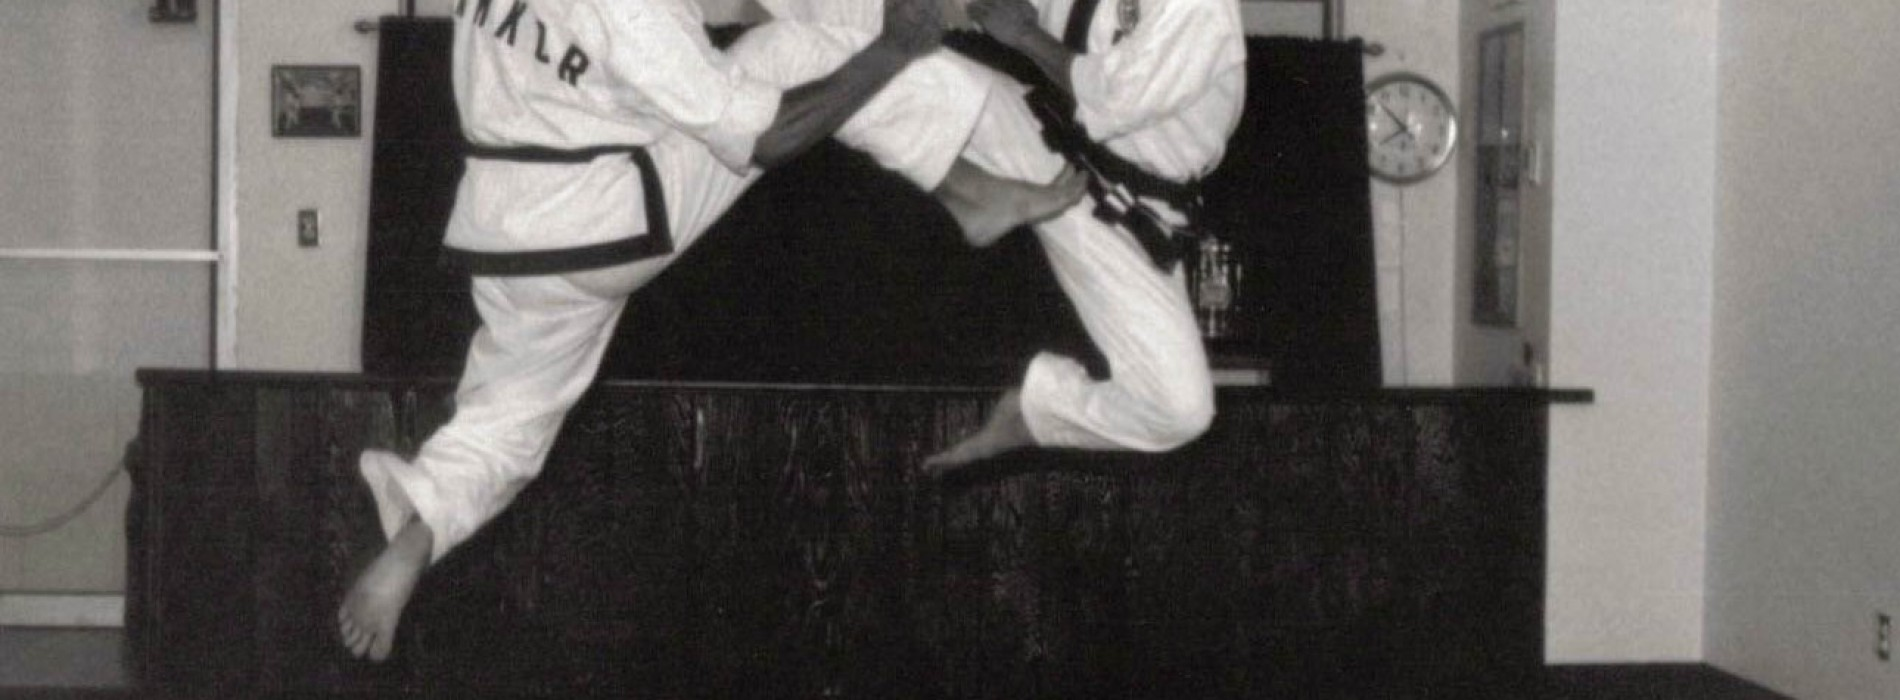 AmKor Karate Aston Pennsylvania